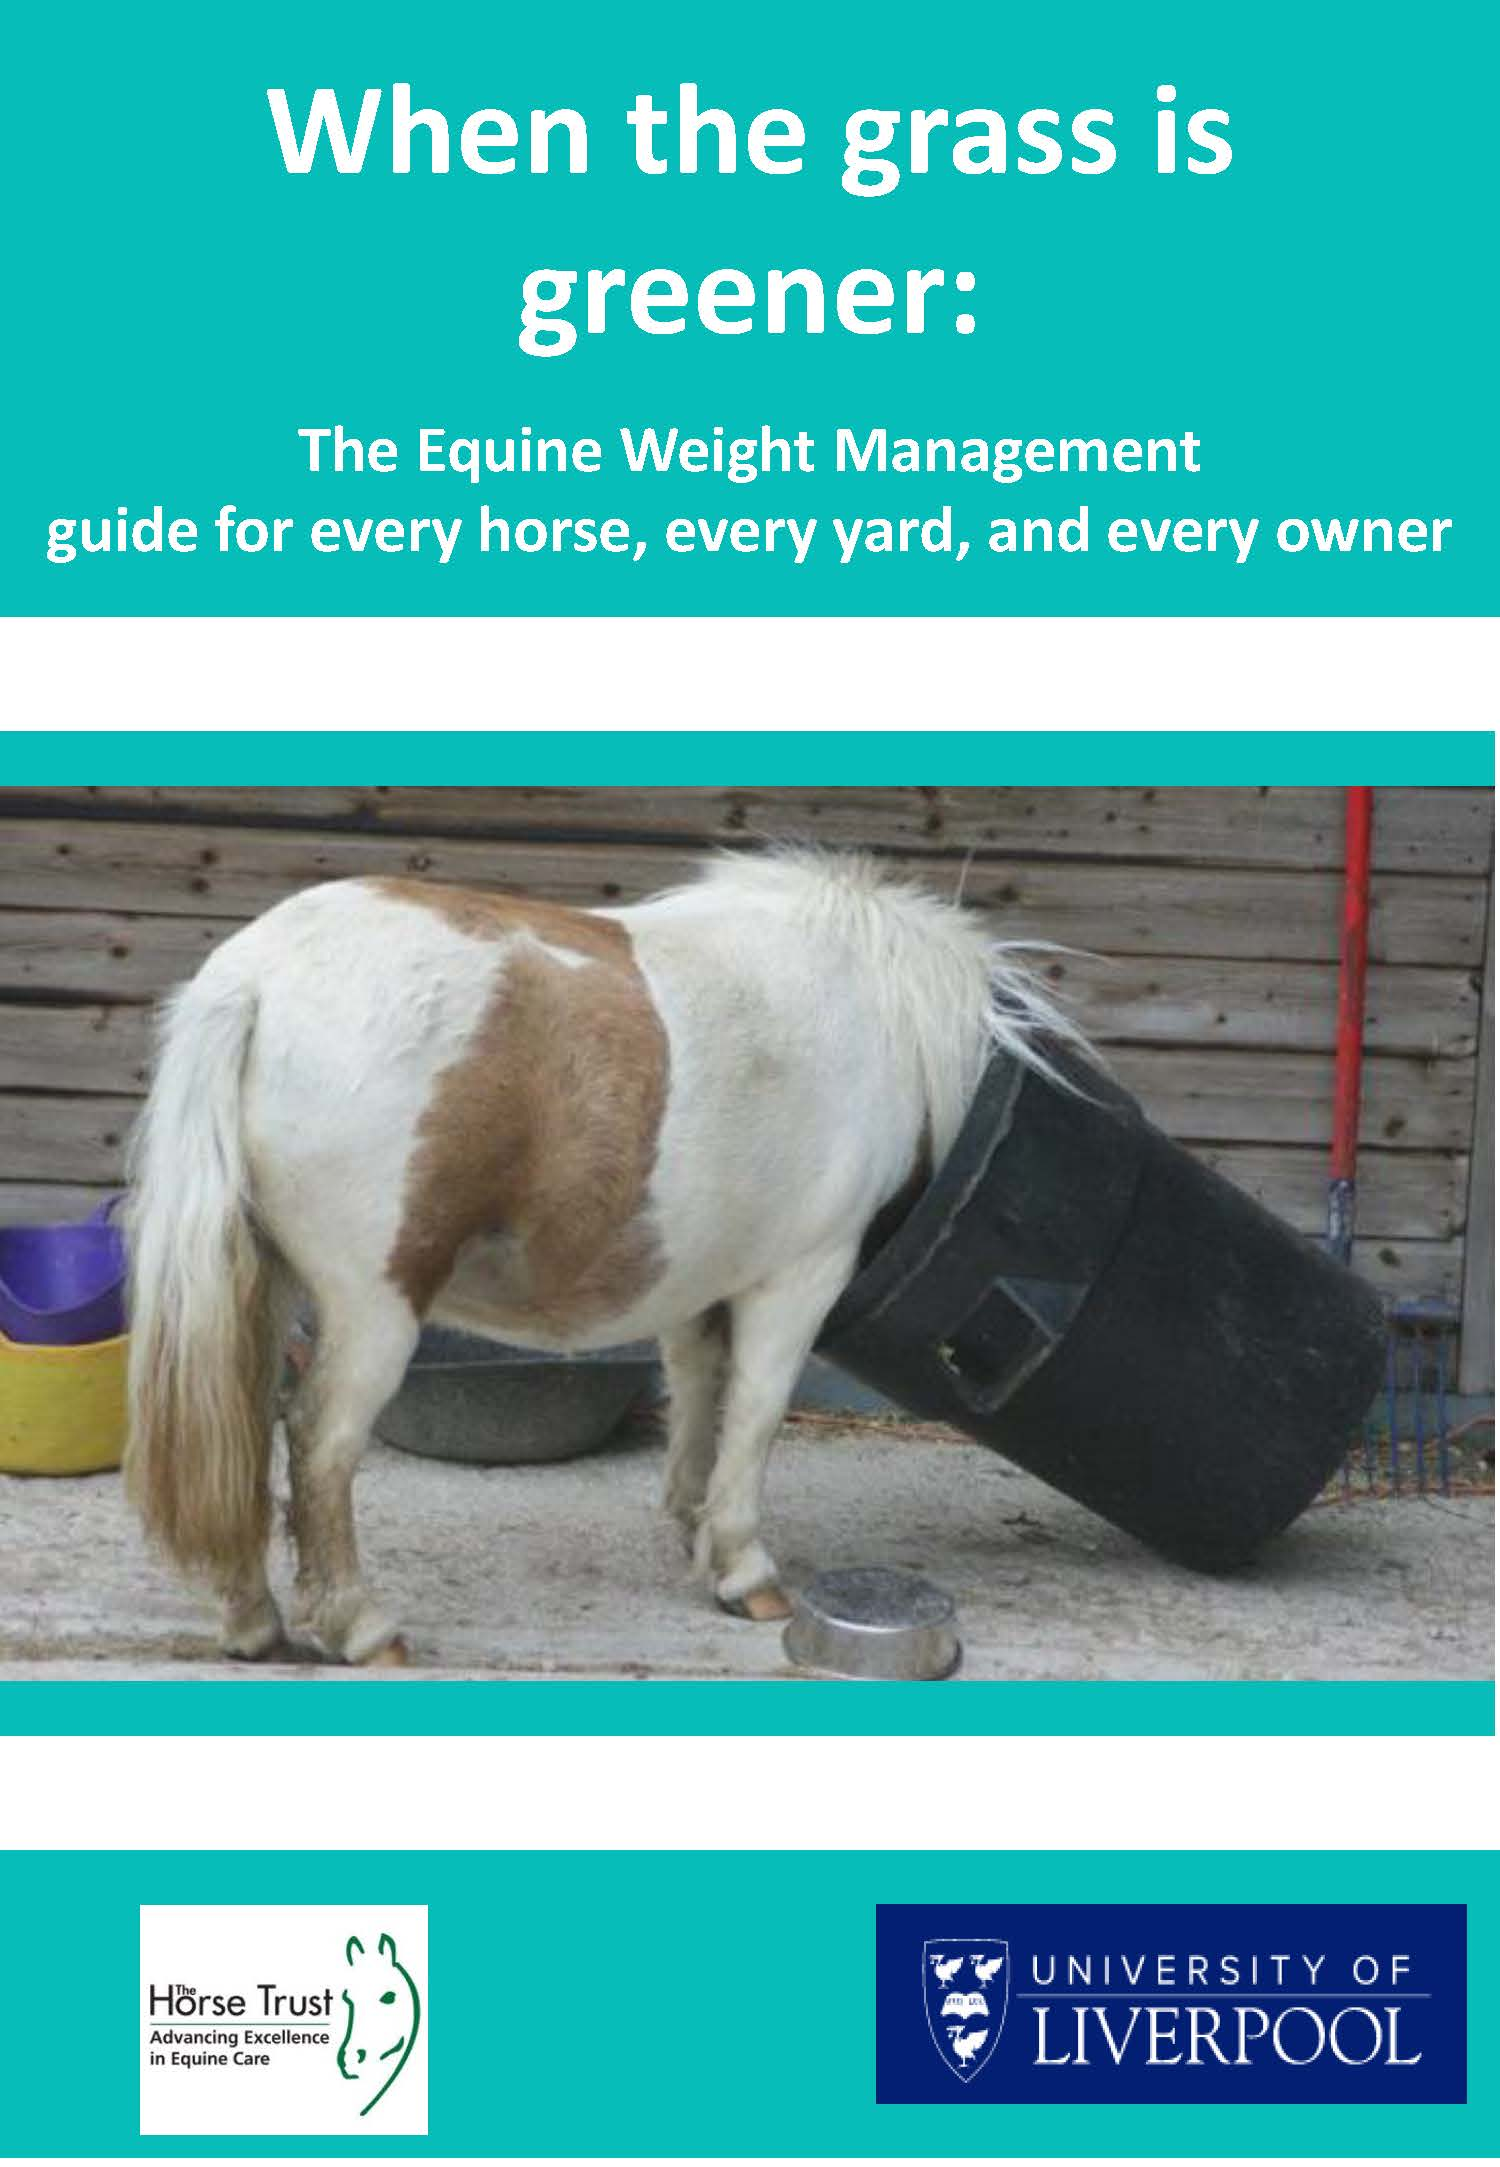 EQUINE WEIGHT MANAGEMENT